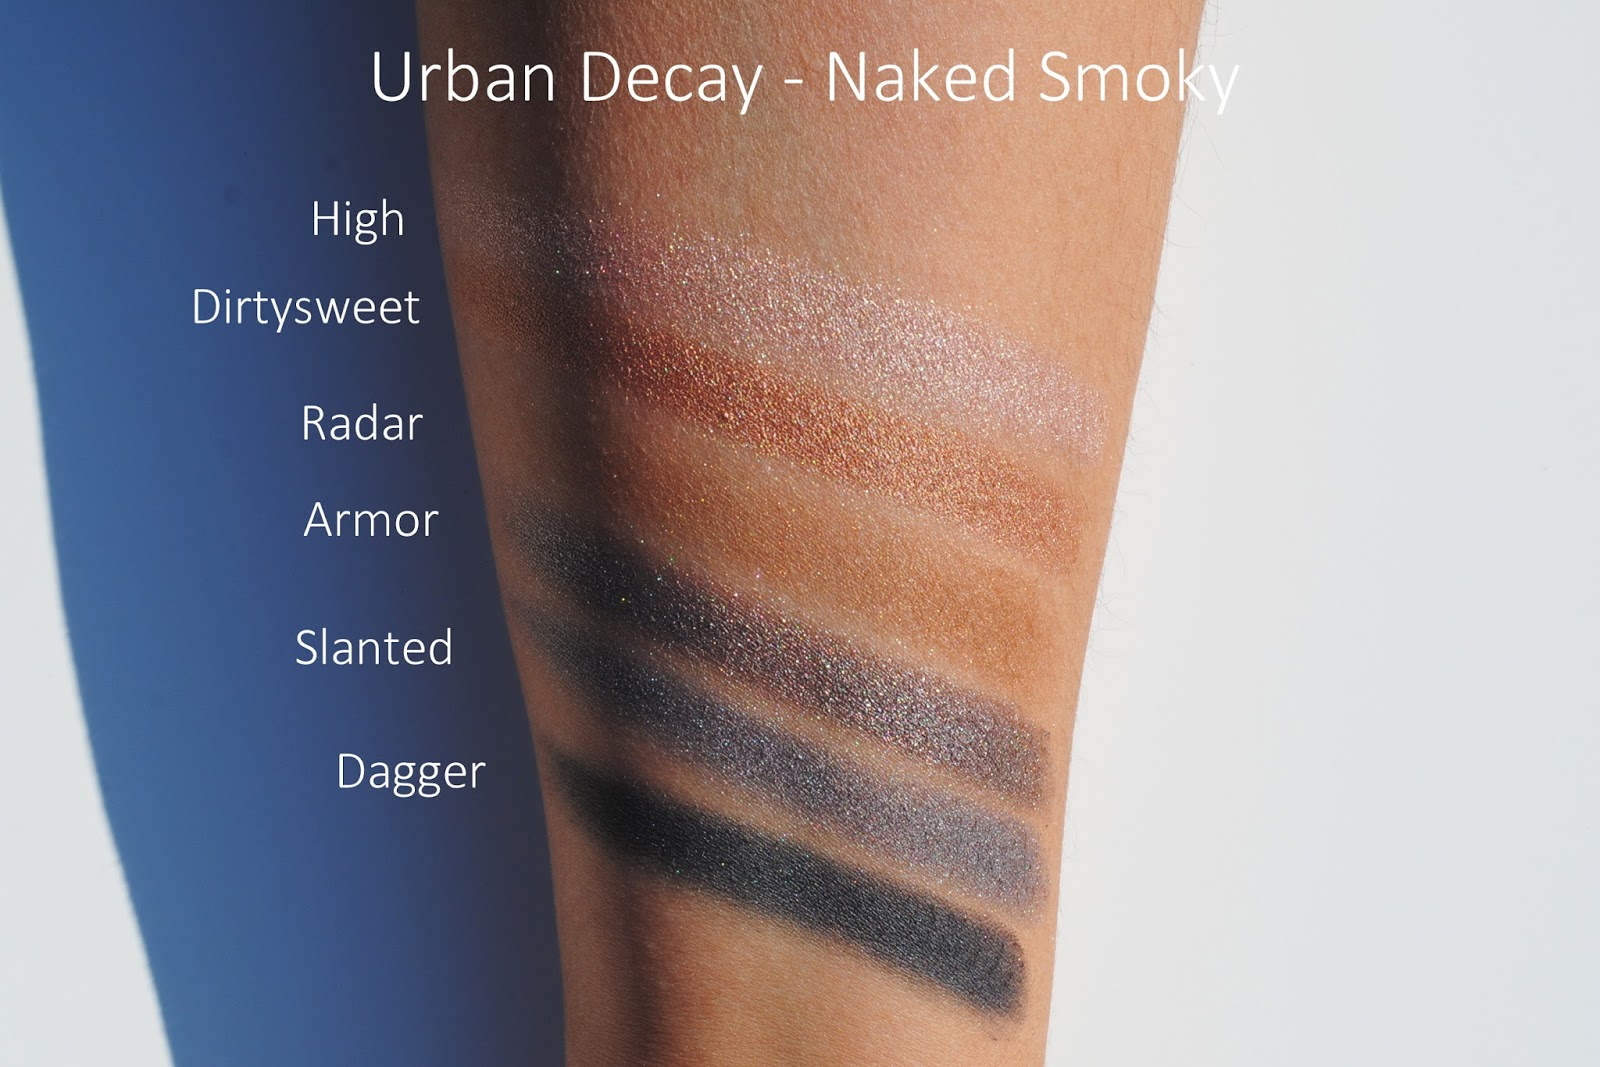 urban decay naked smoky review swatches